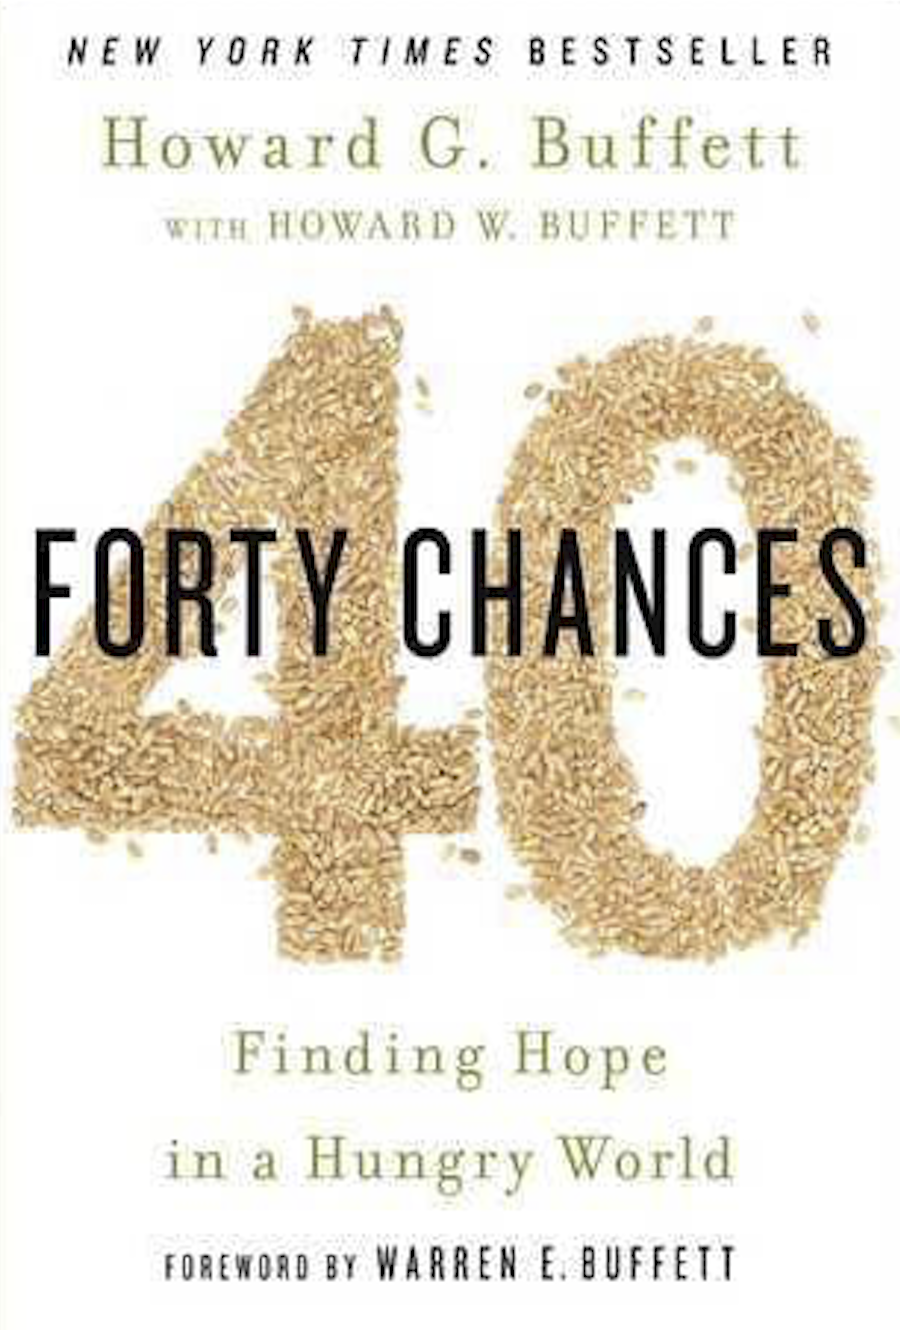 40 Chances - Finding Hope in a Hungry World by Howard G. Buffett and Howard W. Buffett